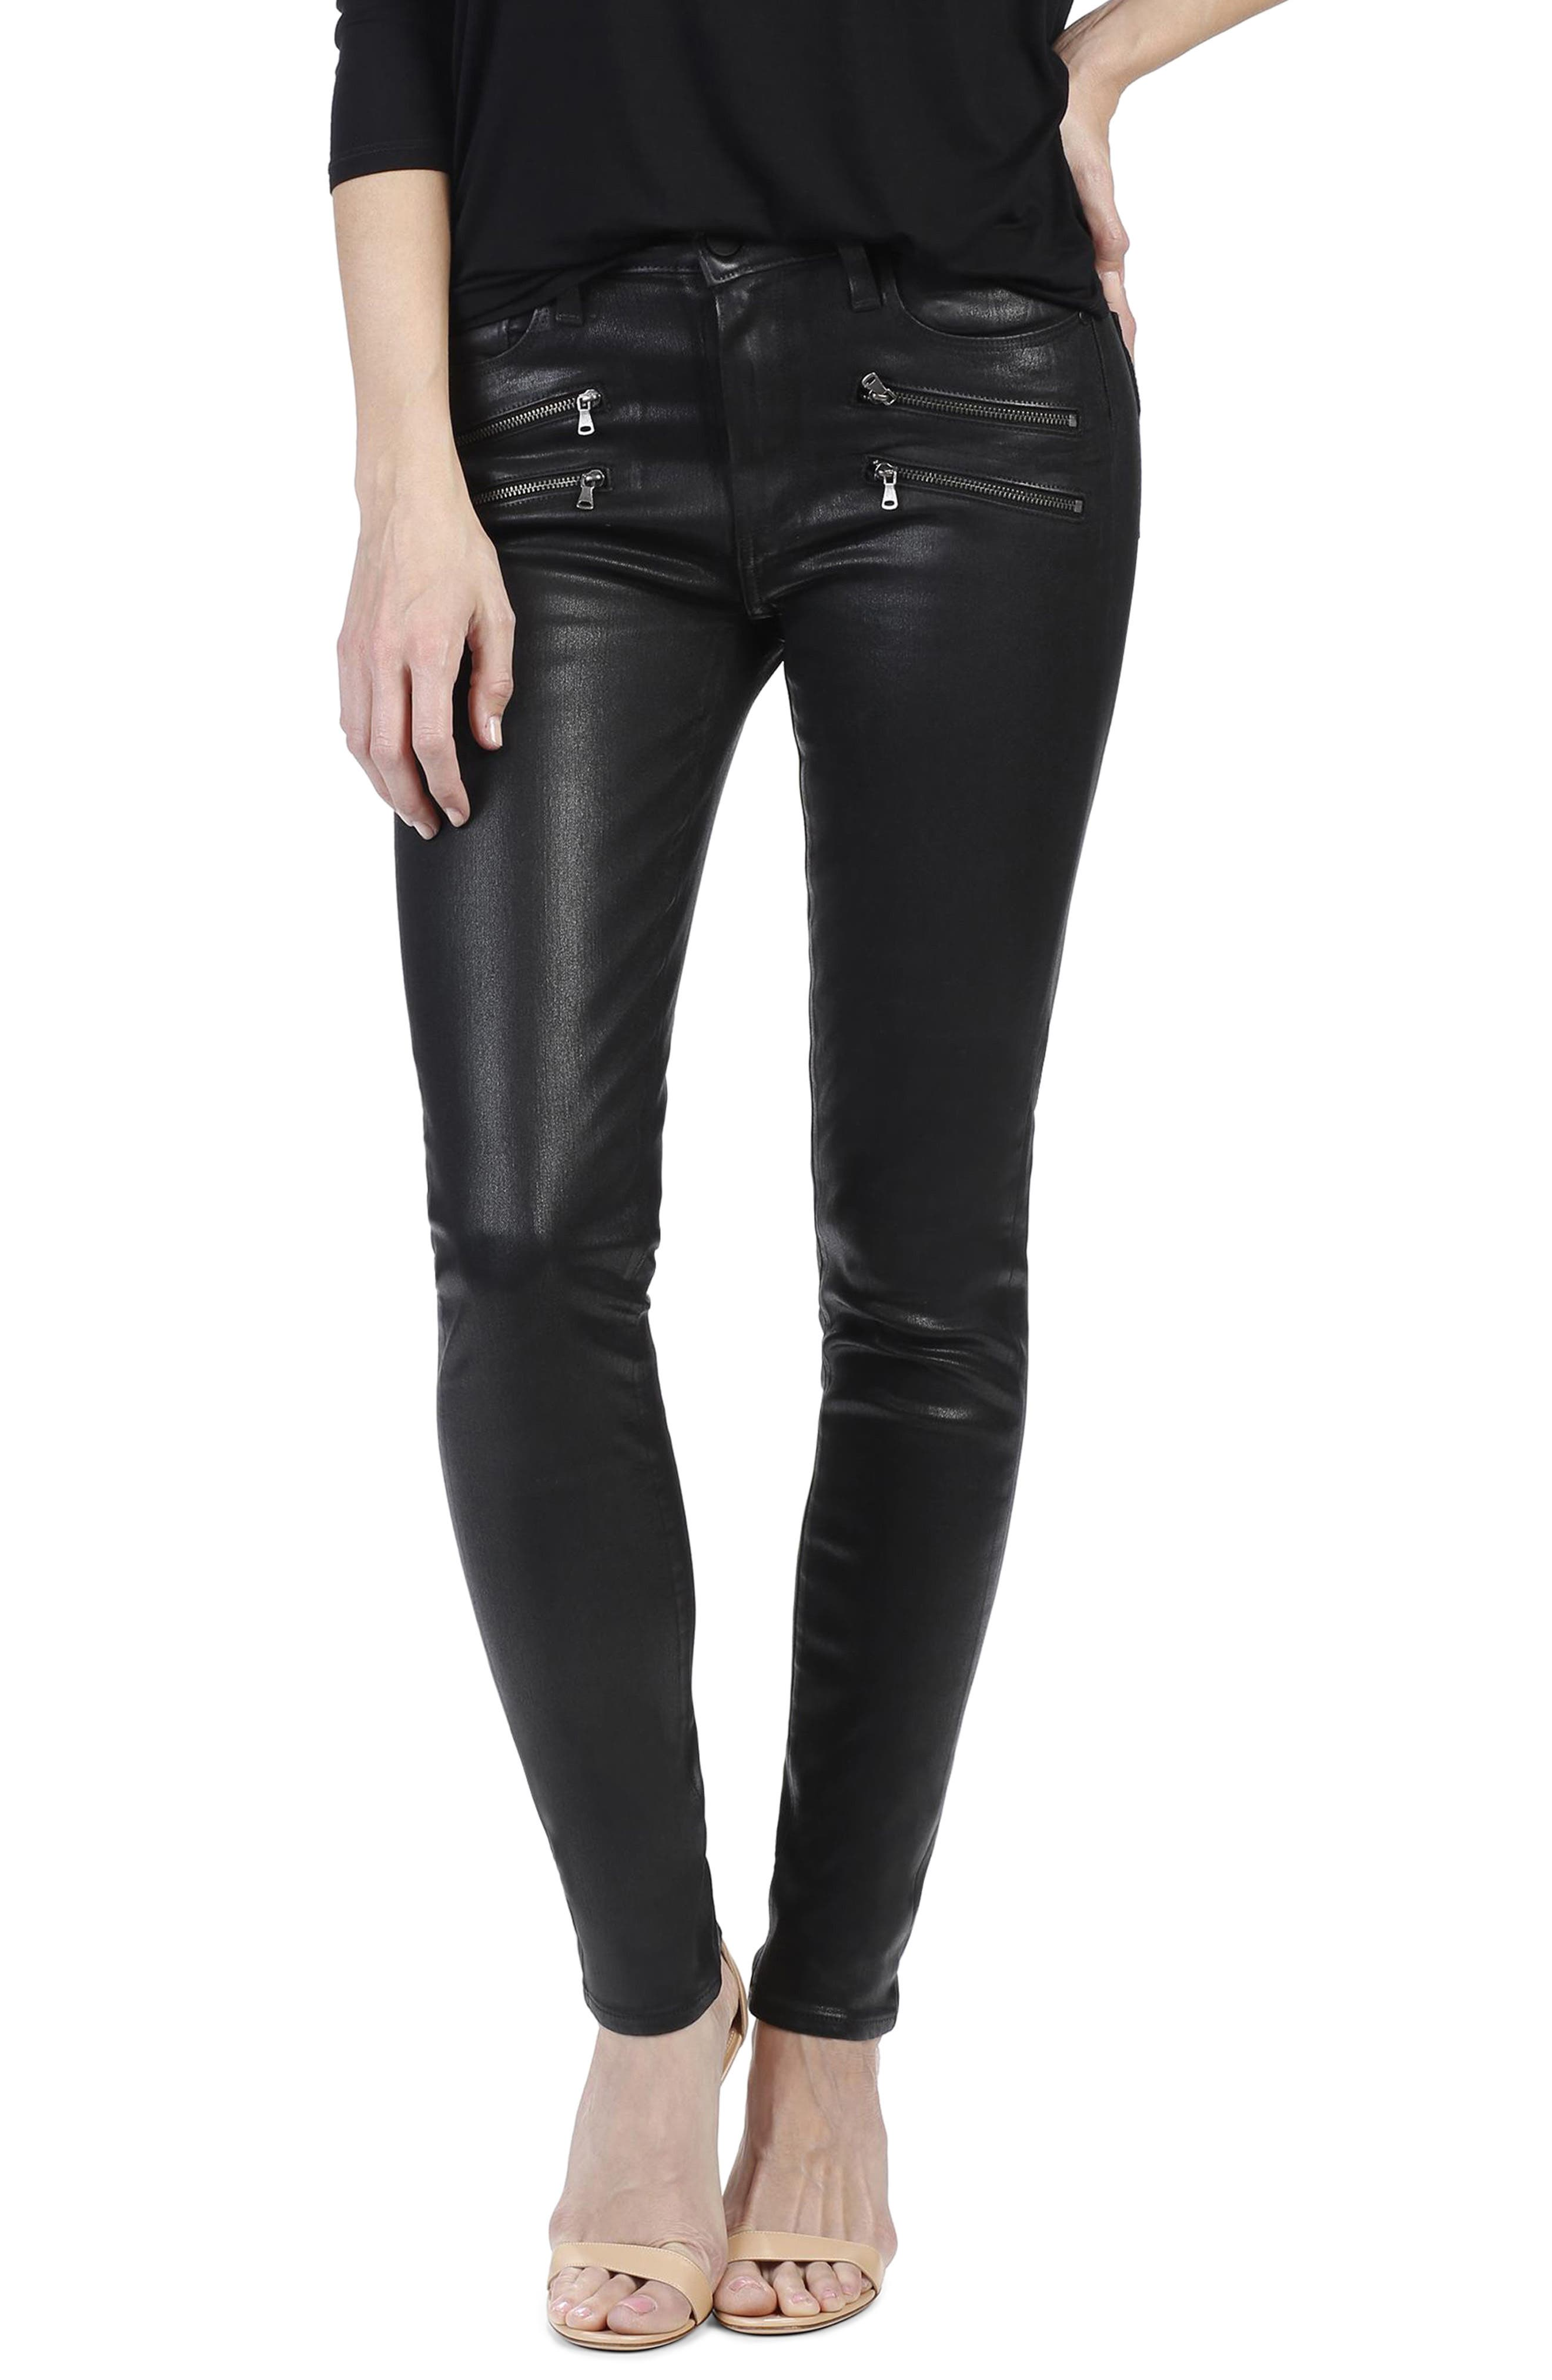 Edgemont Zip Coated High Waist Ultra Skinny Jeans,                             Main thumbnail 1, color,                             Black Fog Luxe Coating